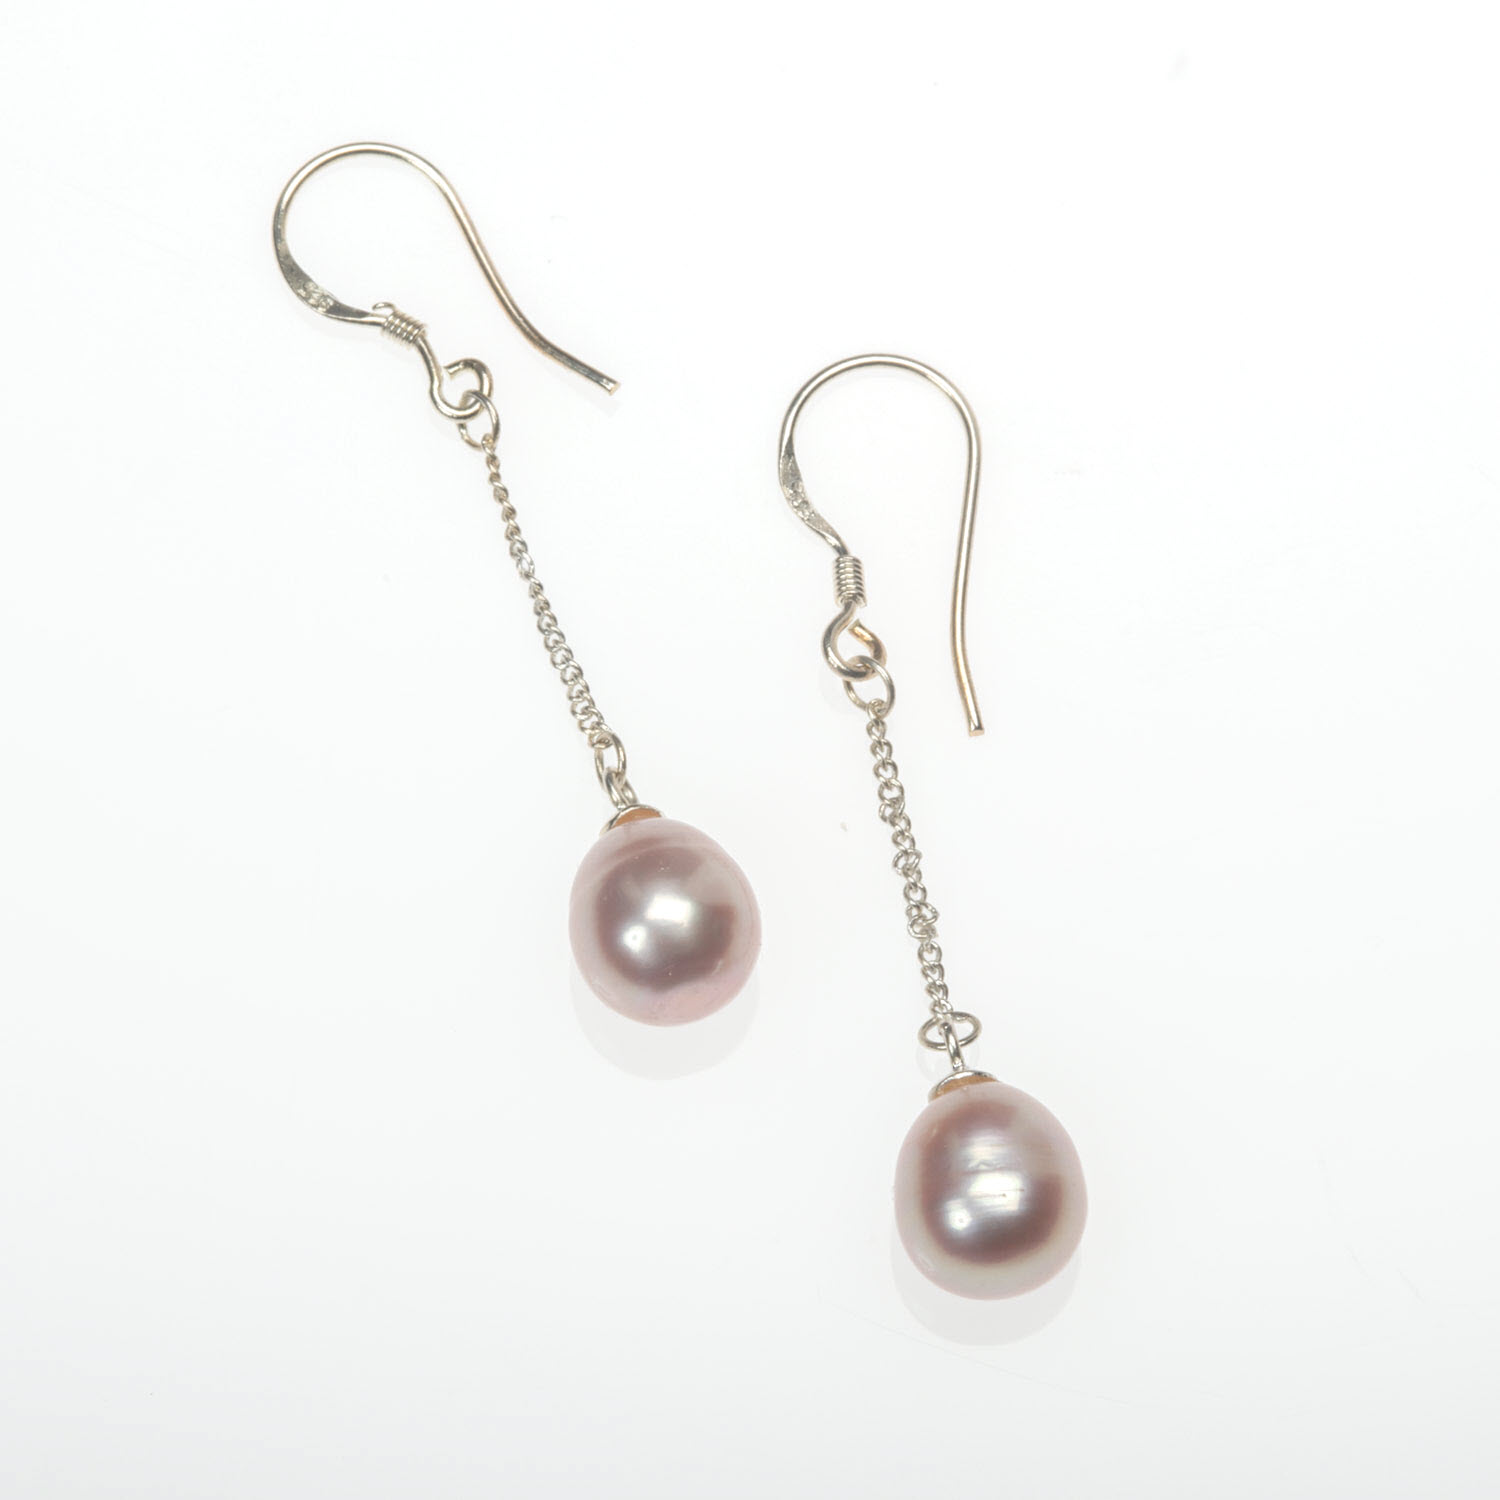 Lavender Freshwater Pearl Drop Earrings